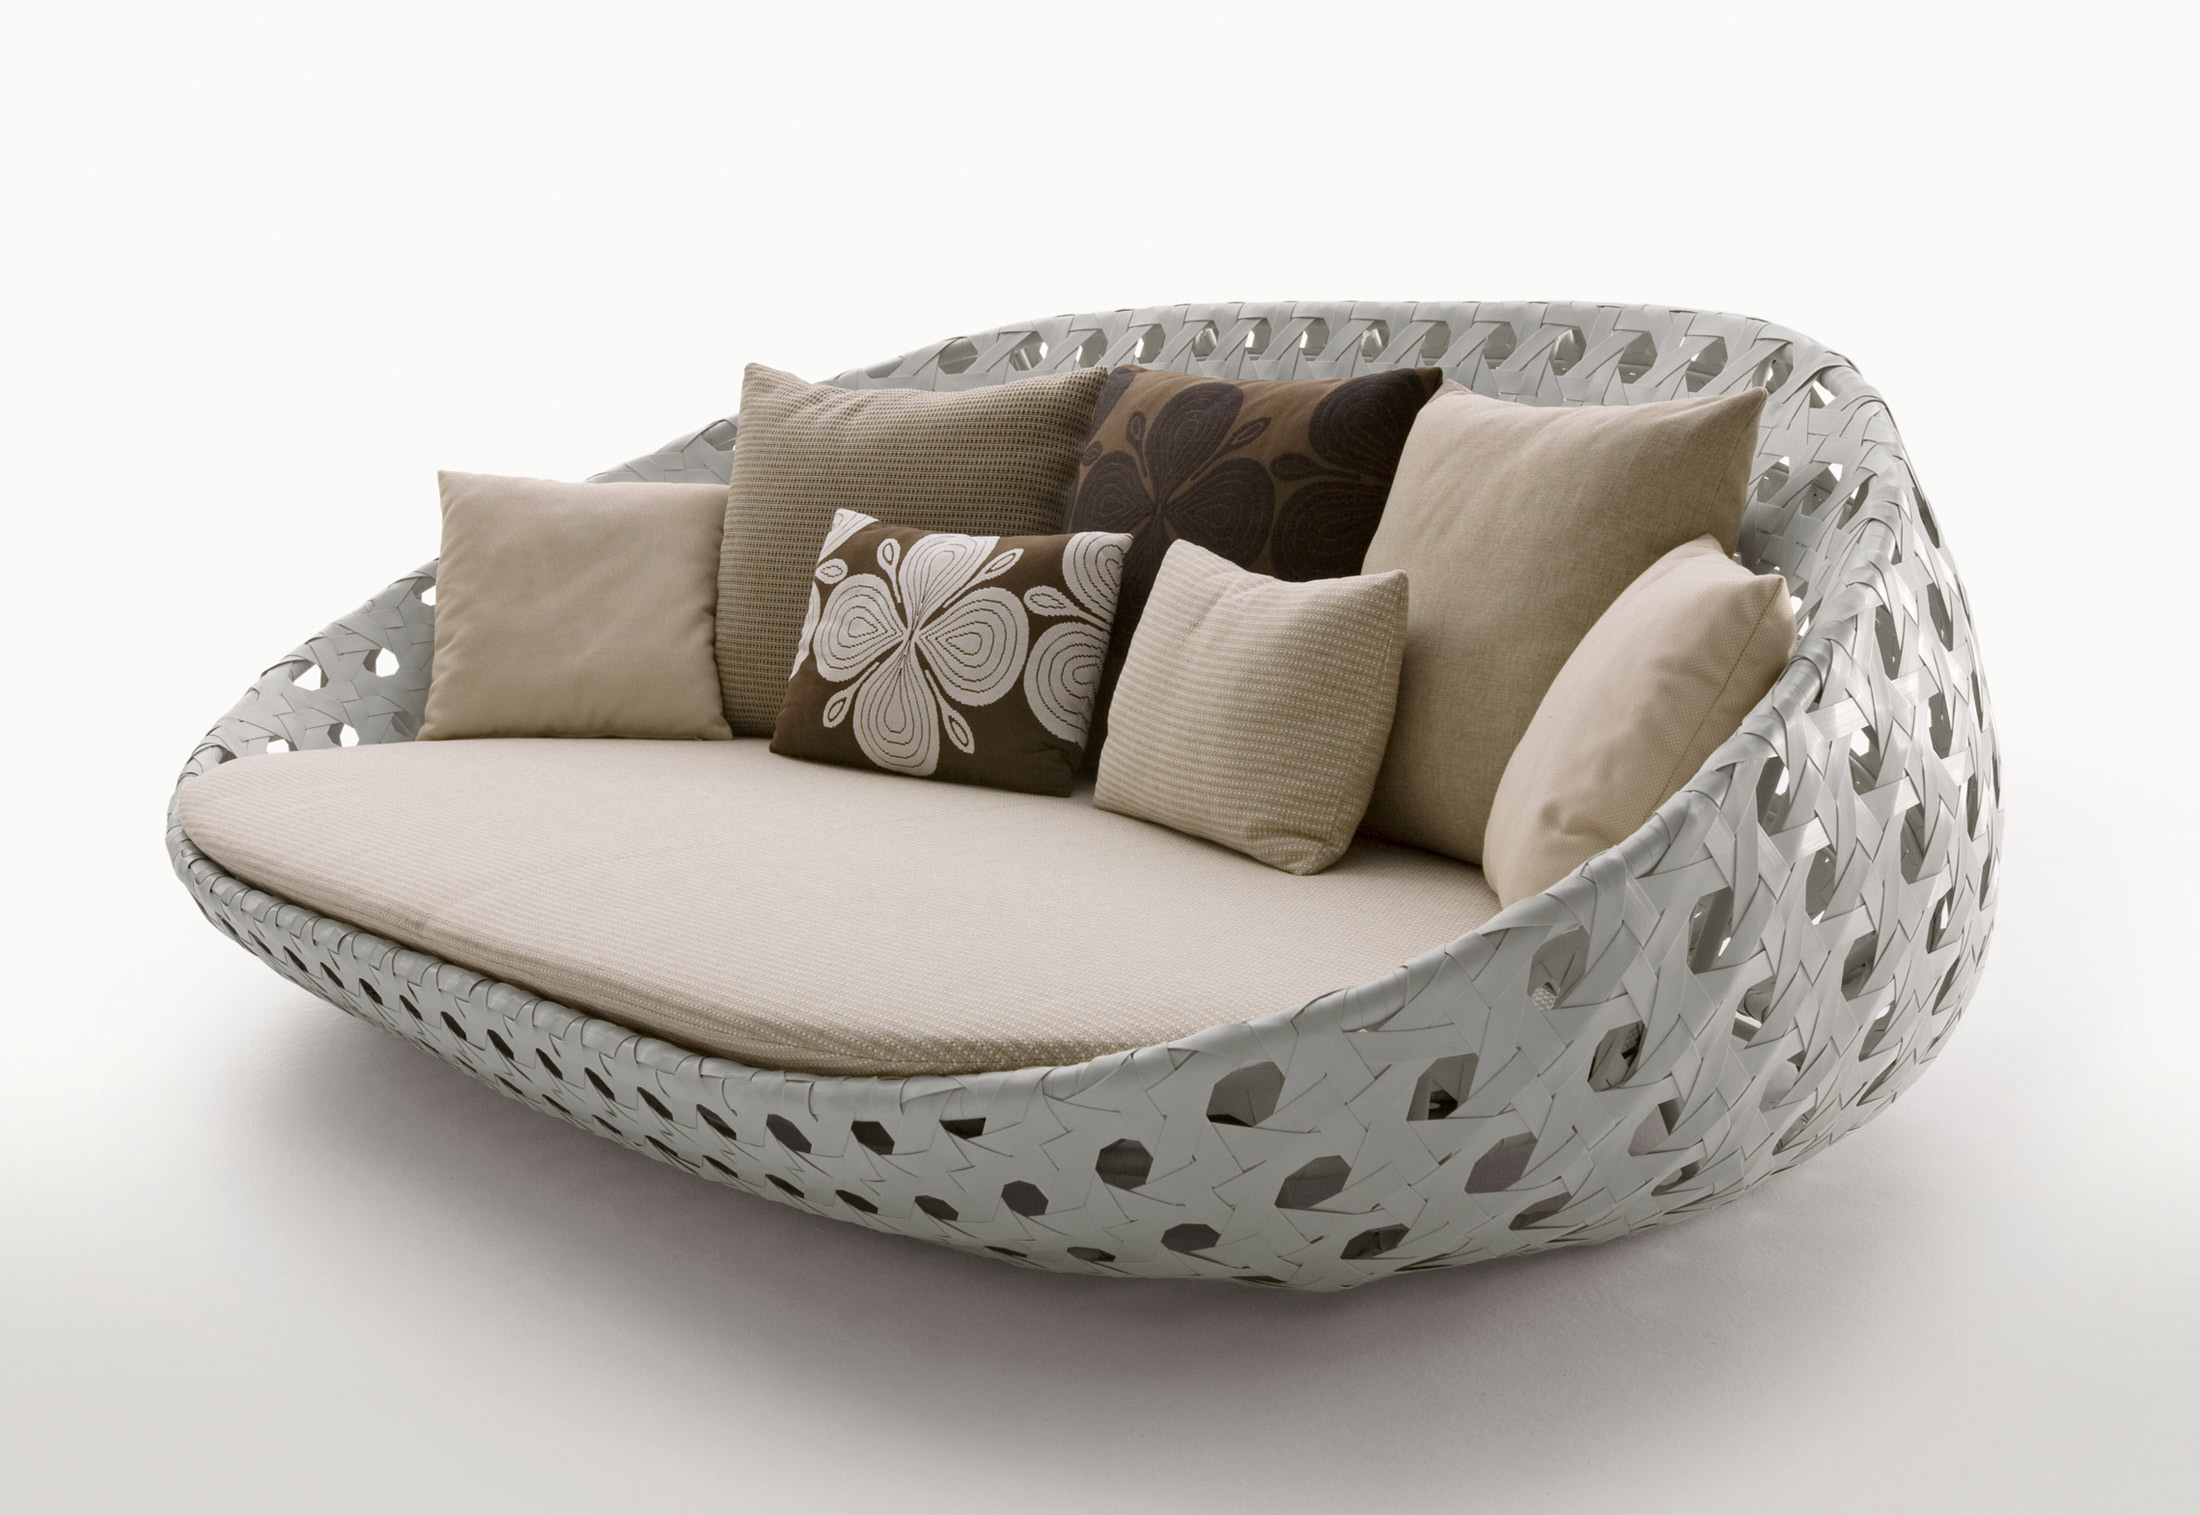 High Quality CANASTA Circular Sofa Photo Gallery